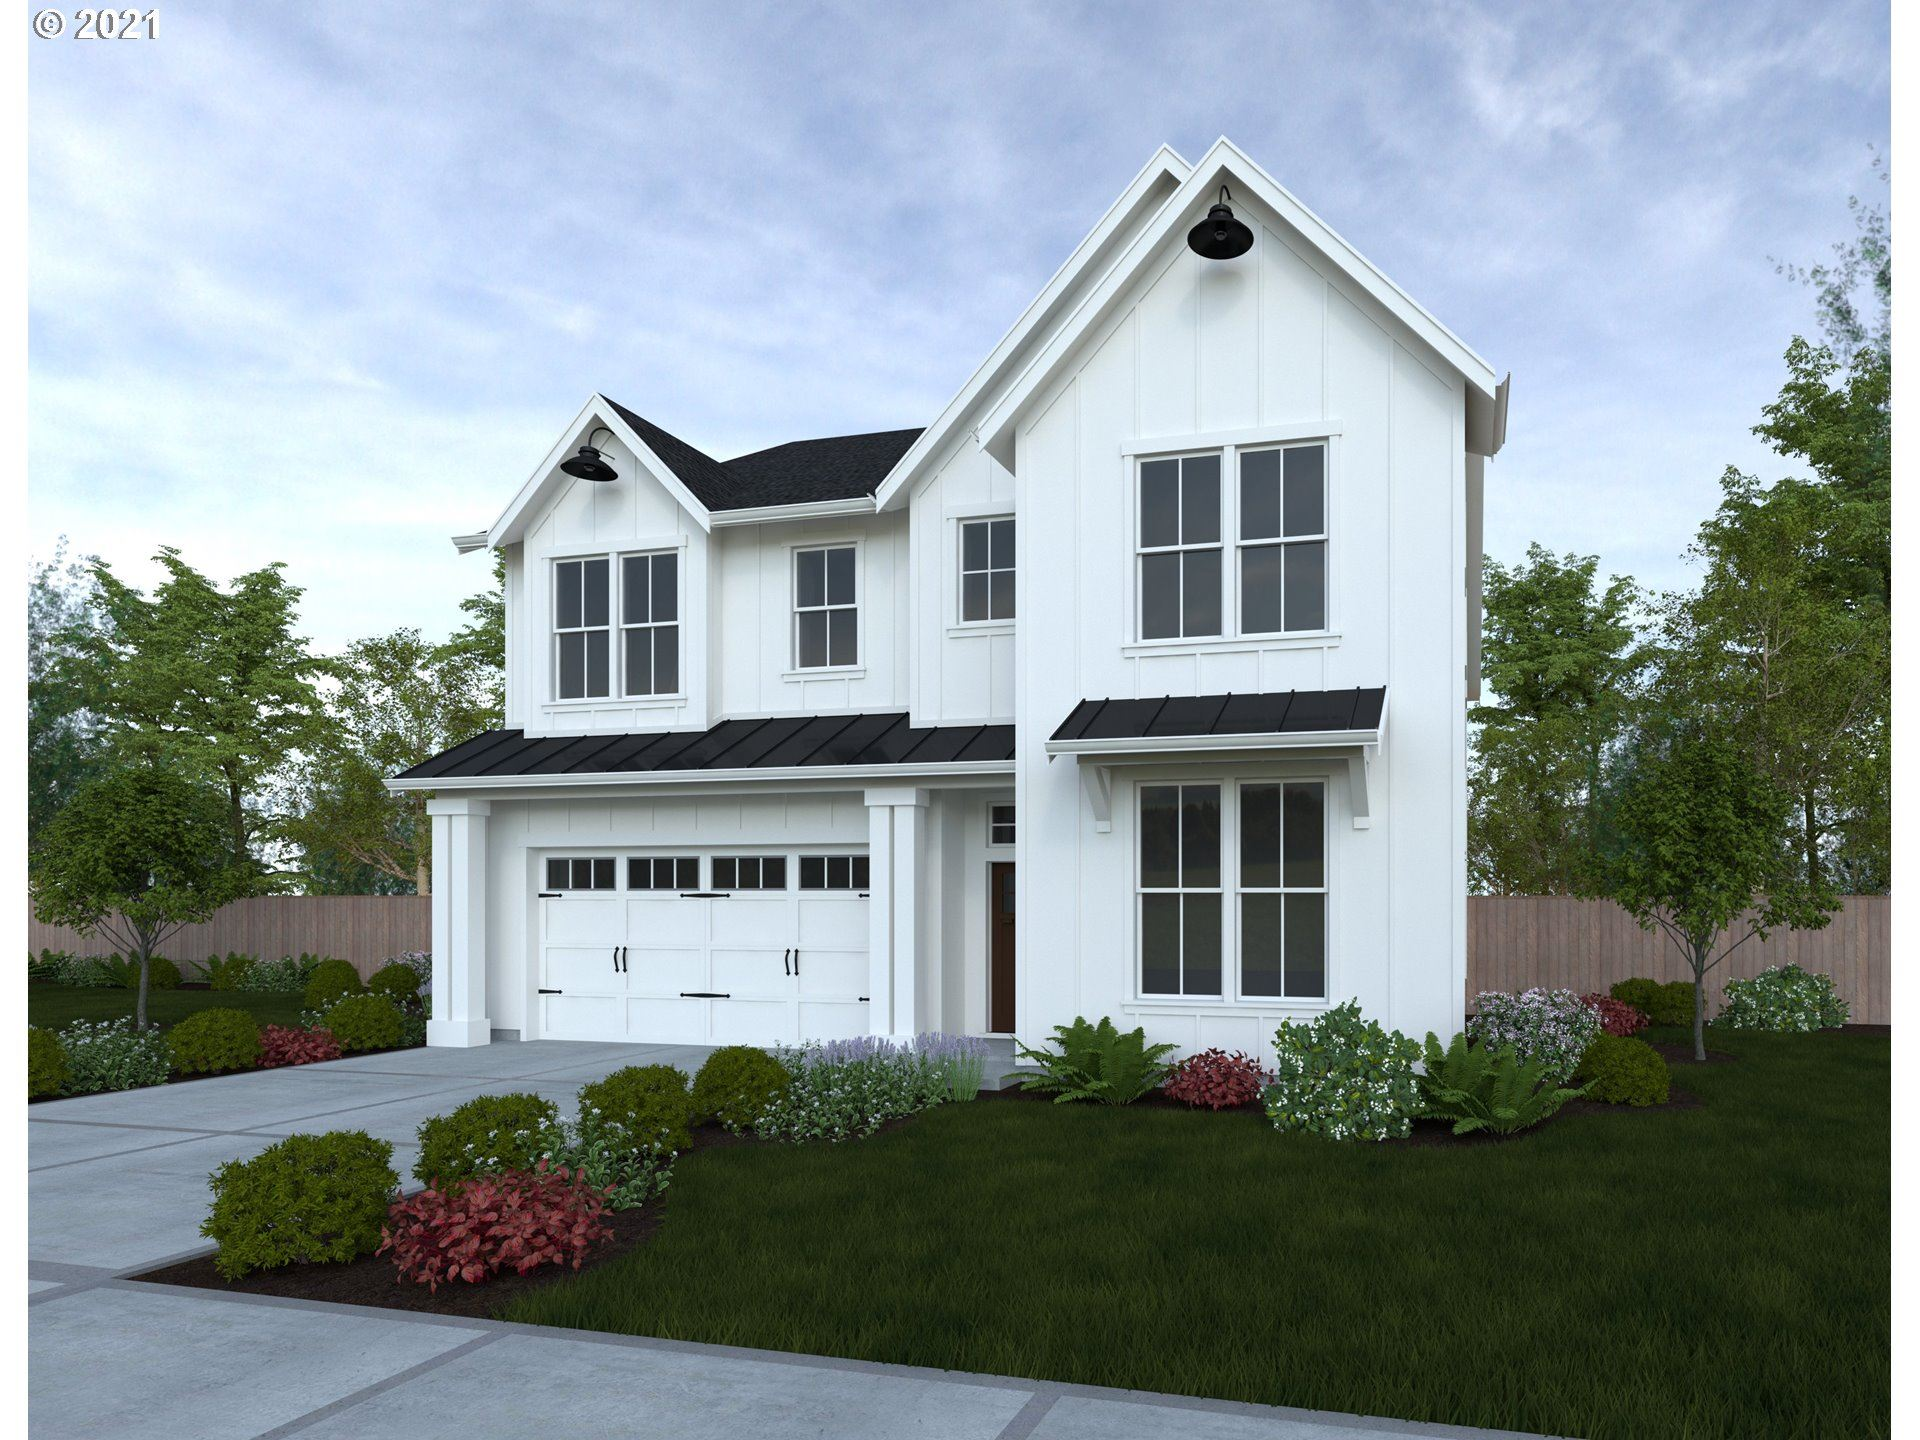 Photo for 12013 NW Schall ST #LOT 7, Portland, OR 97229 (MLS # 20670174)